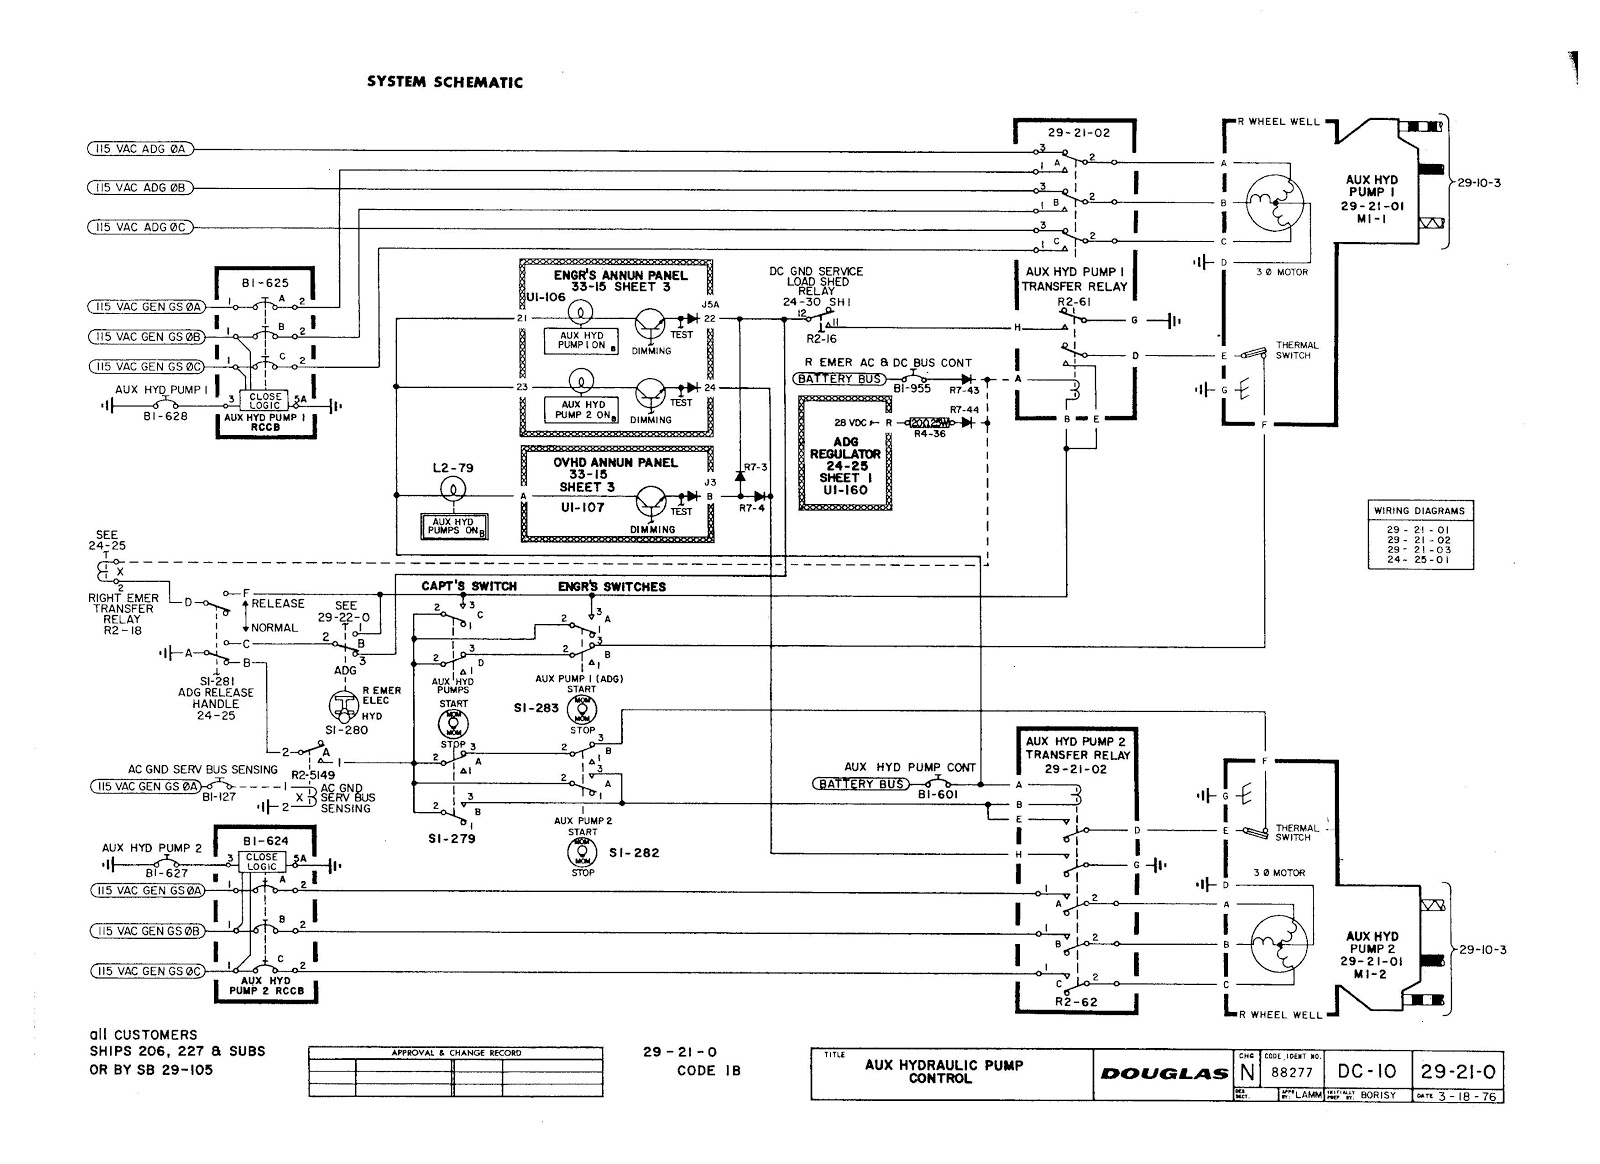 aircraft wiring diagrams wiring diagram third level hvac electrical wiring diagrams electrical systems wiring diagrams [ 1600 x 1164 Pixel ]